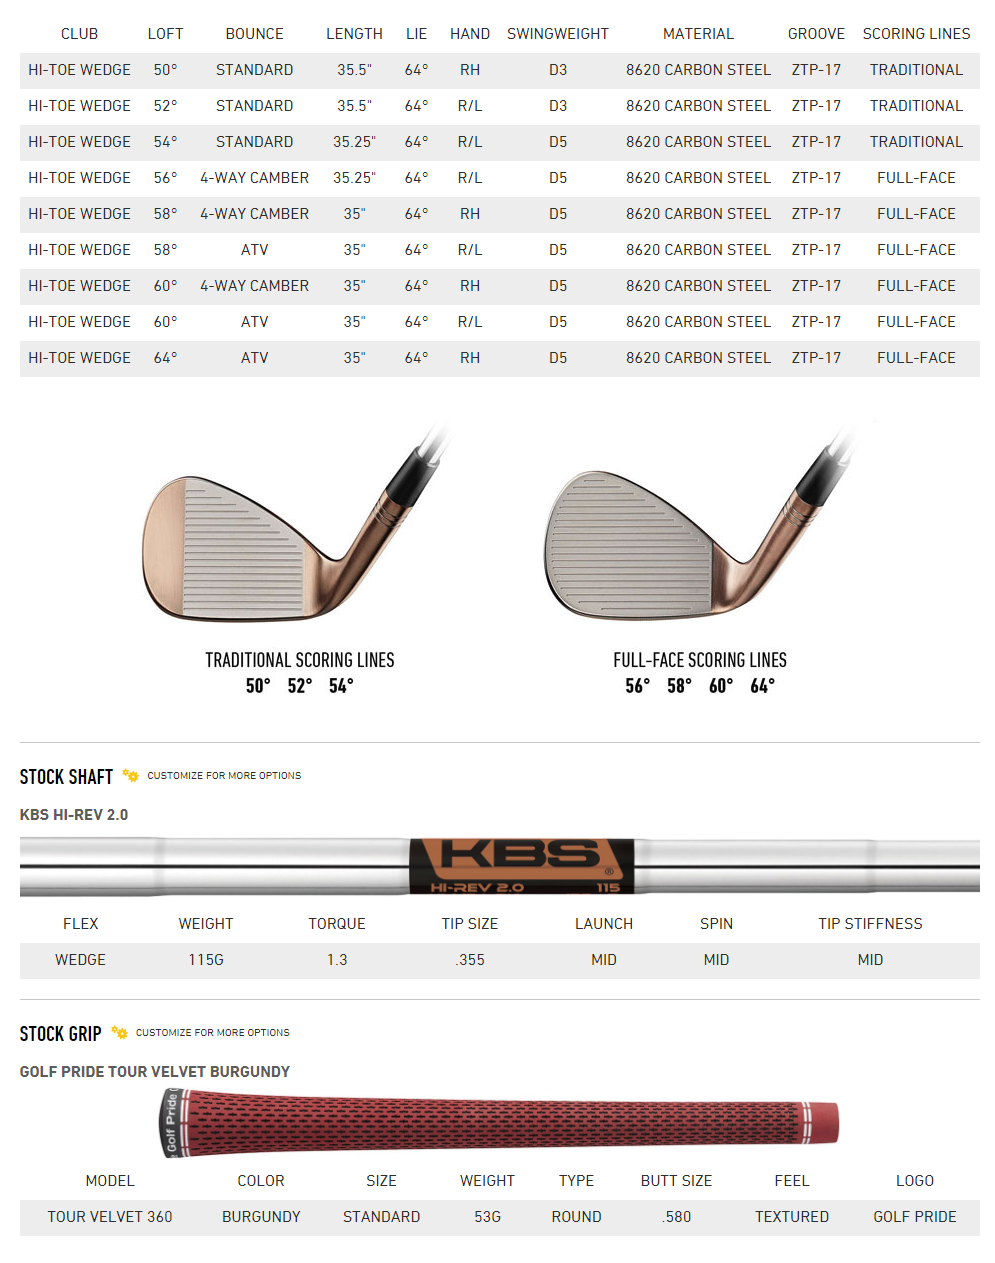 TaylorMade Milled Grind Hi-Toe Wedge Tech Specs